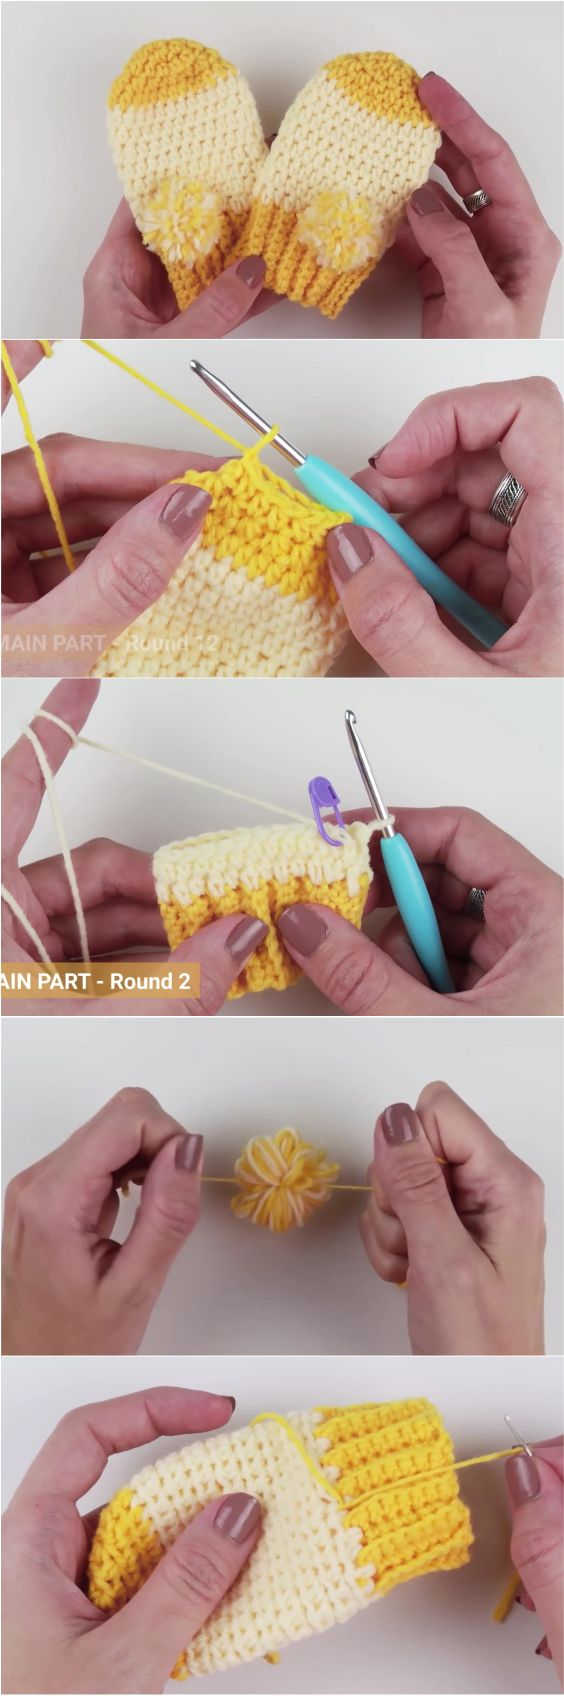 How to Crochet Fast and Easy Crochet Baby Mittens | Tejido, Bebe y ...